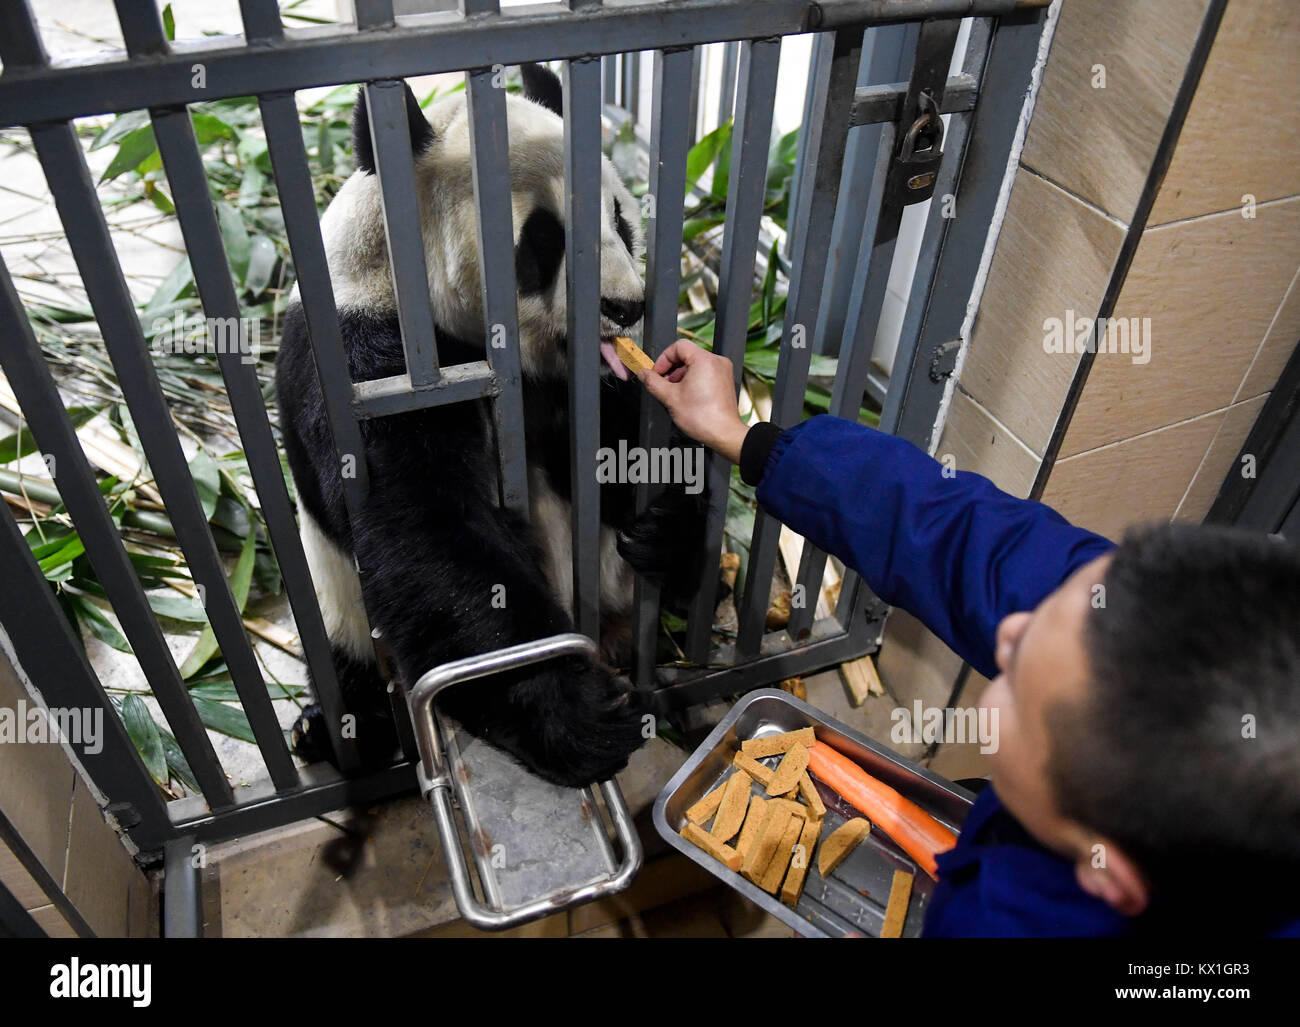 Changchung, China. 6th January, 2018. (180106) -- CHANGCHUN, Jan. 6, 2018 (Xinhua) -- Giant panda 'Jia Jia' - Stock Image